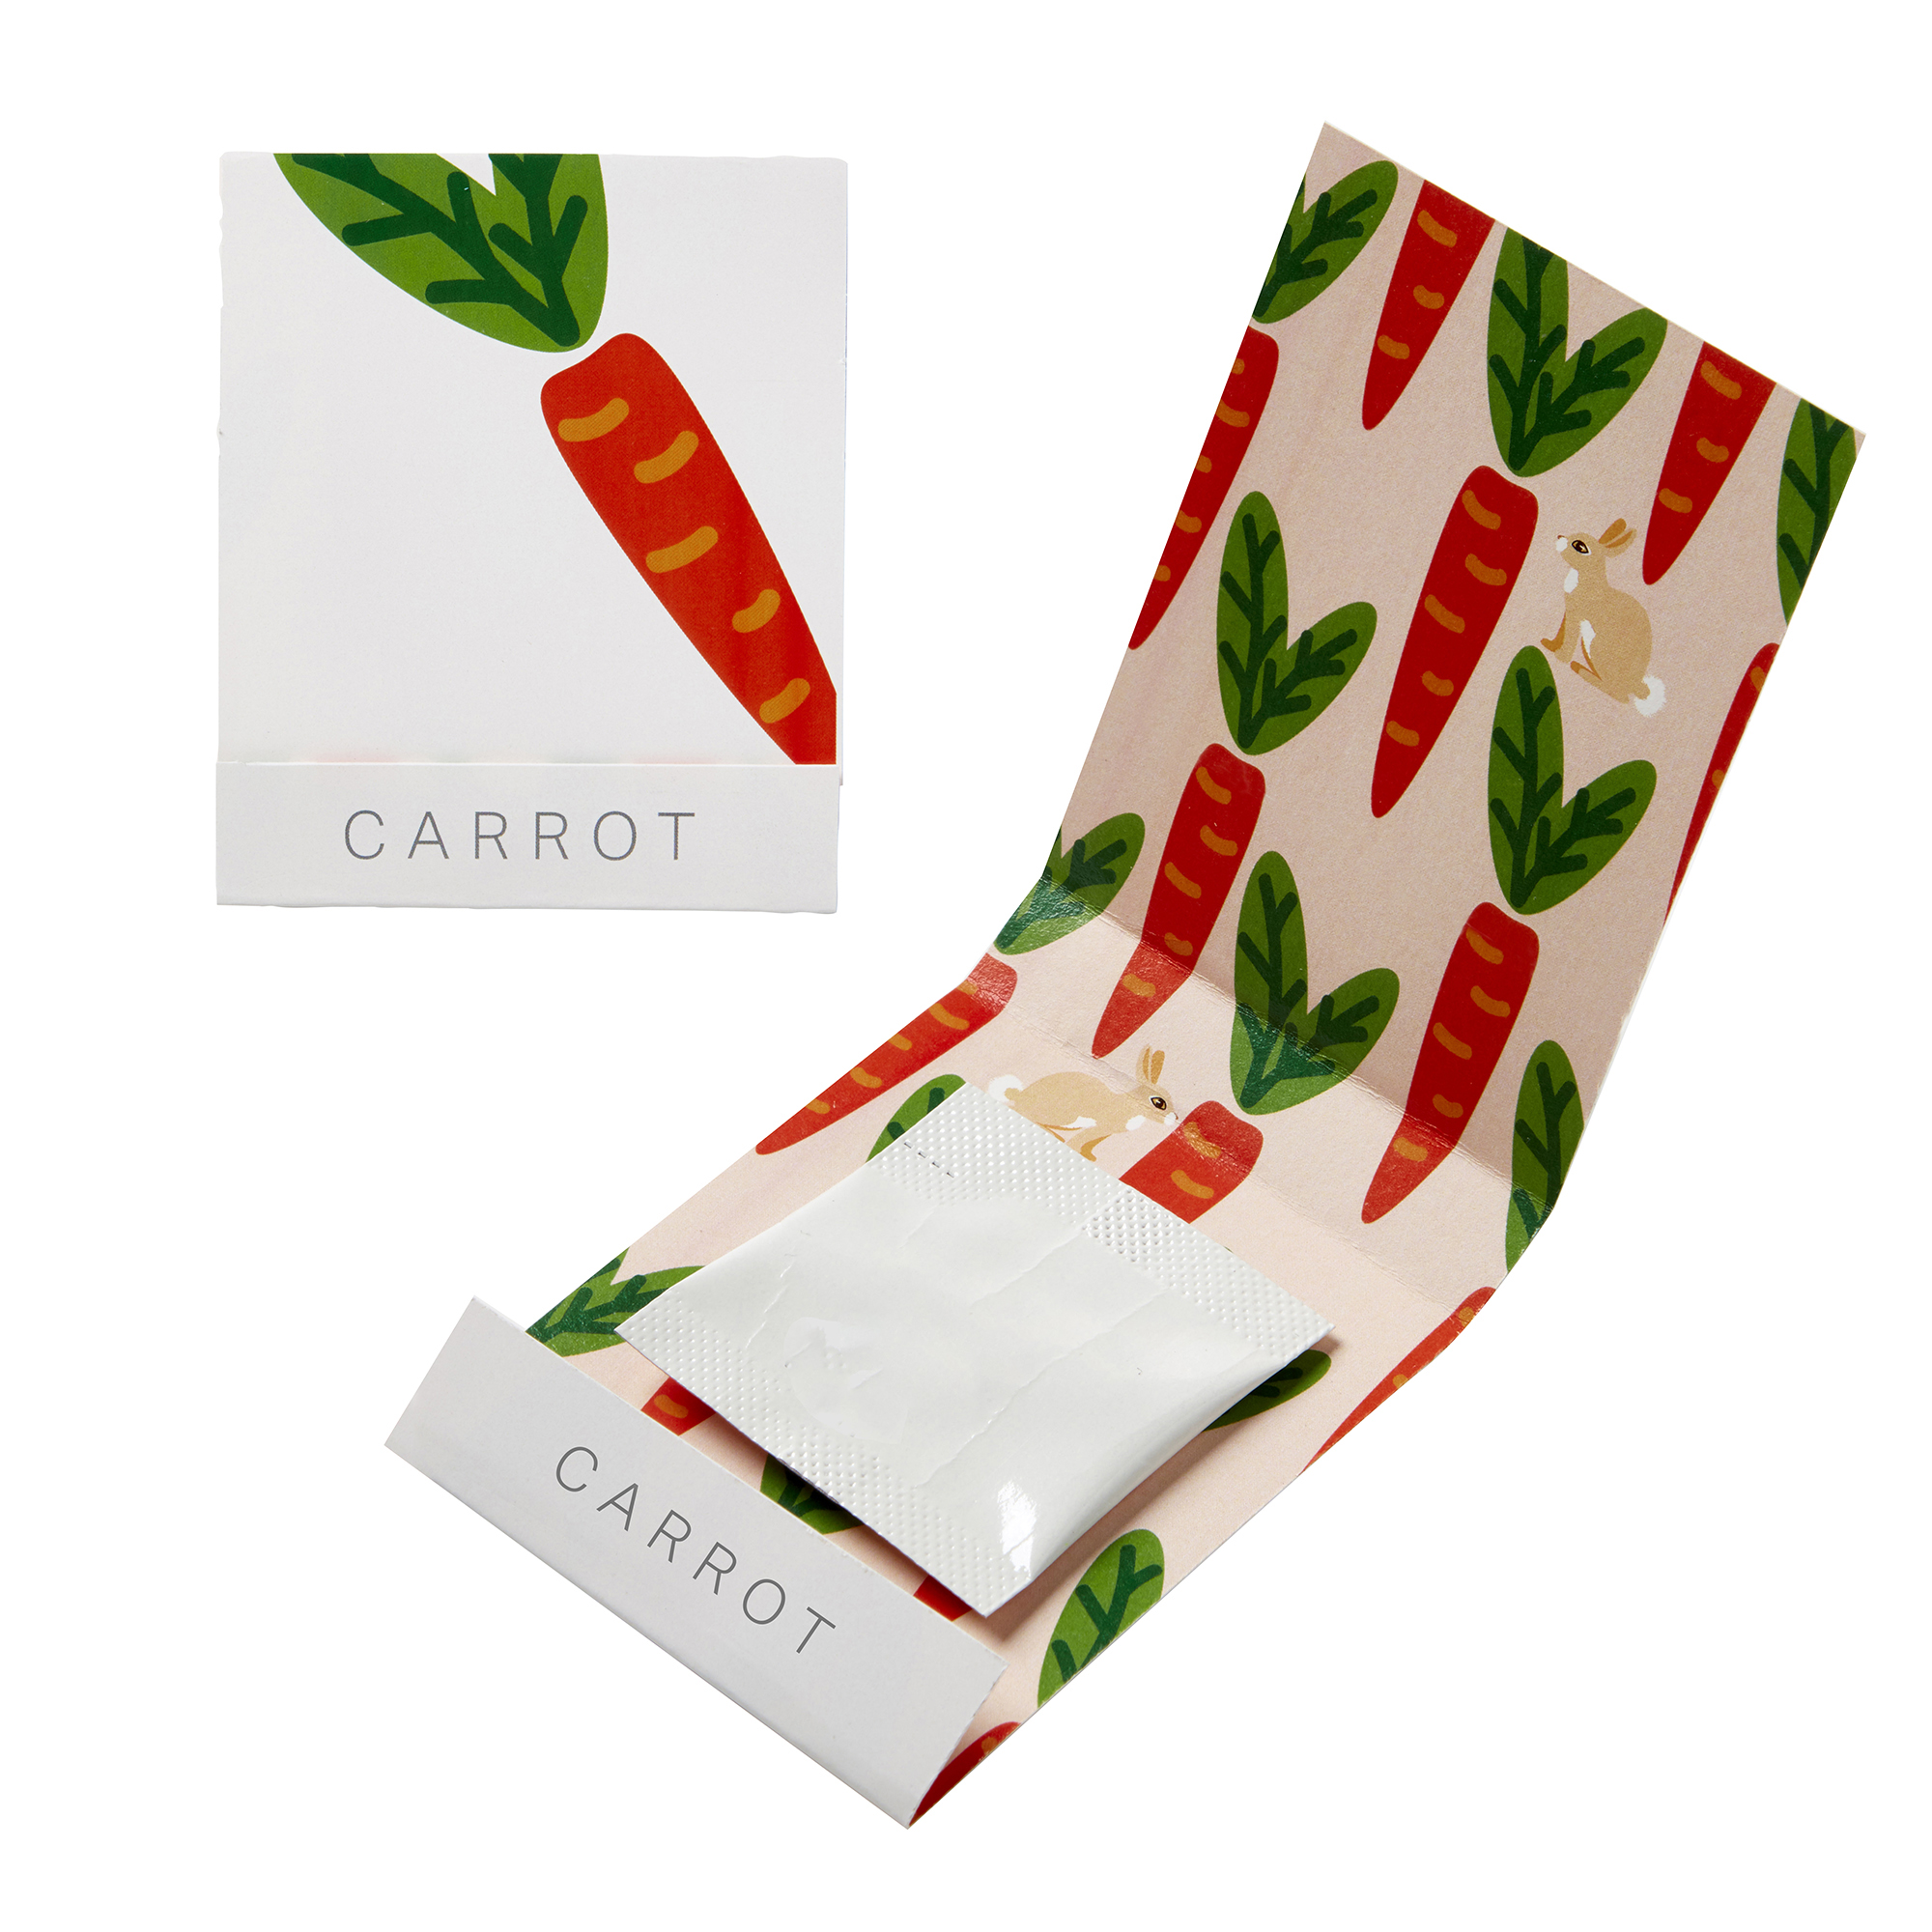 Carrot Seed Matchbook